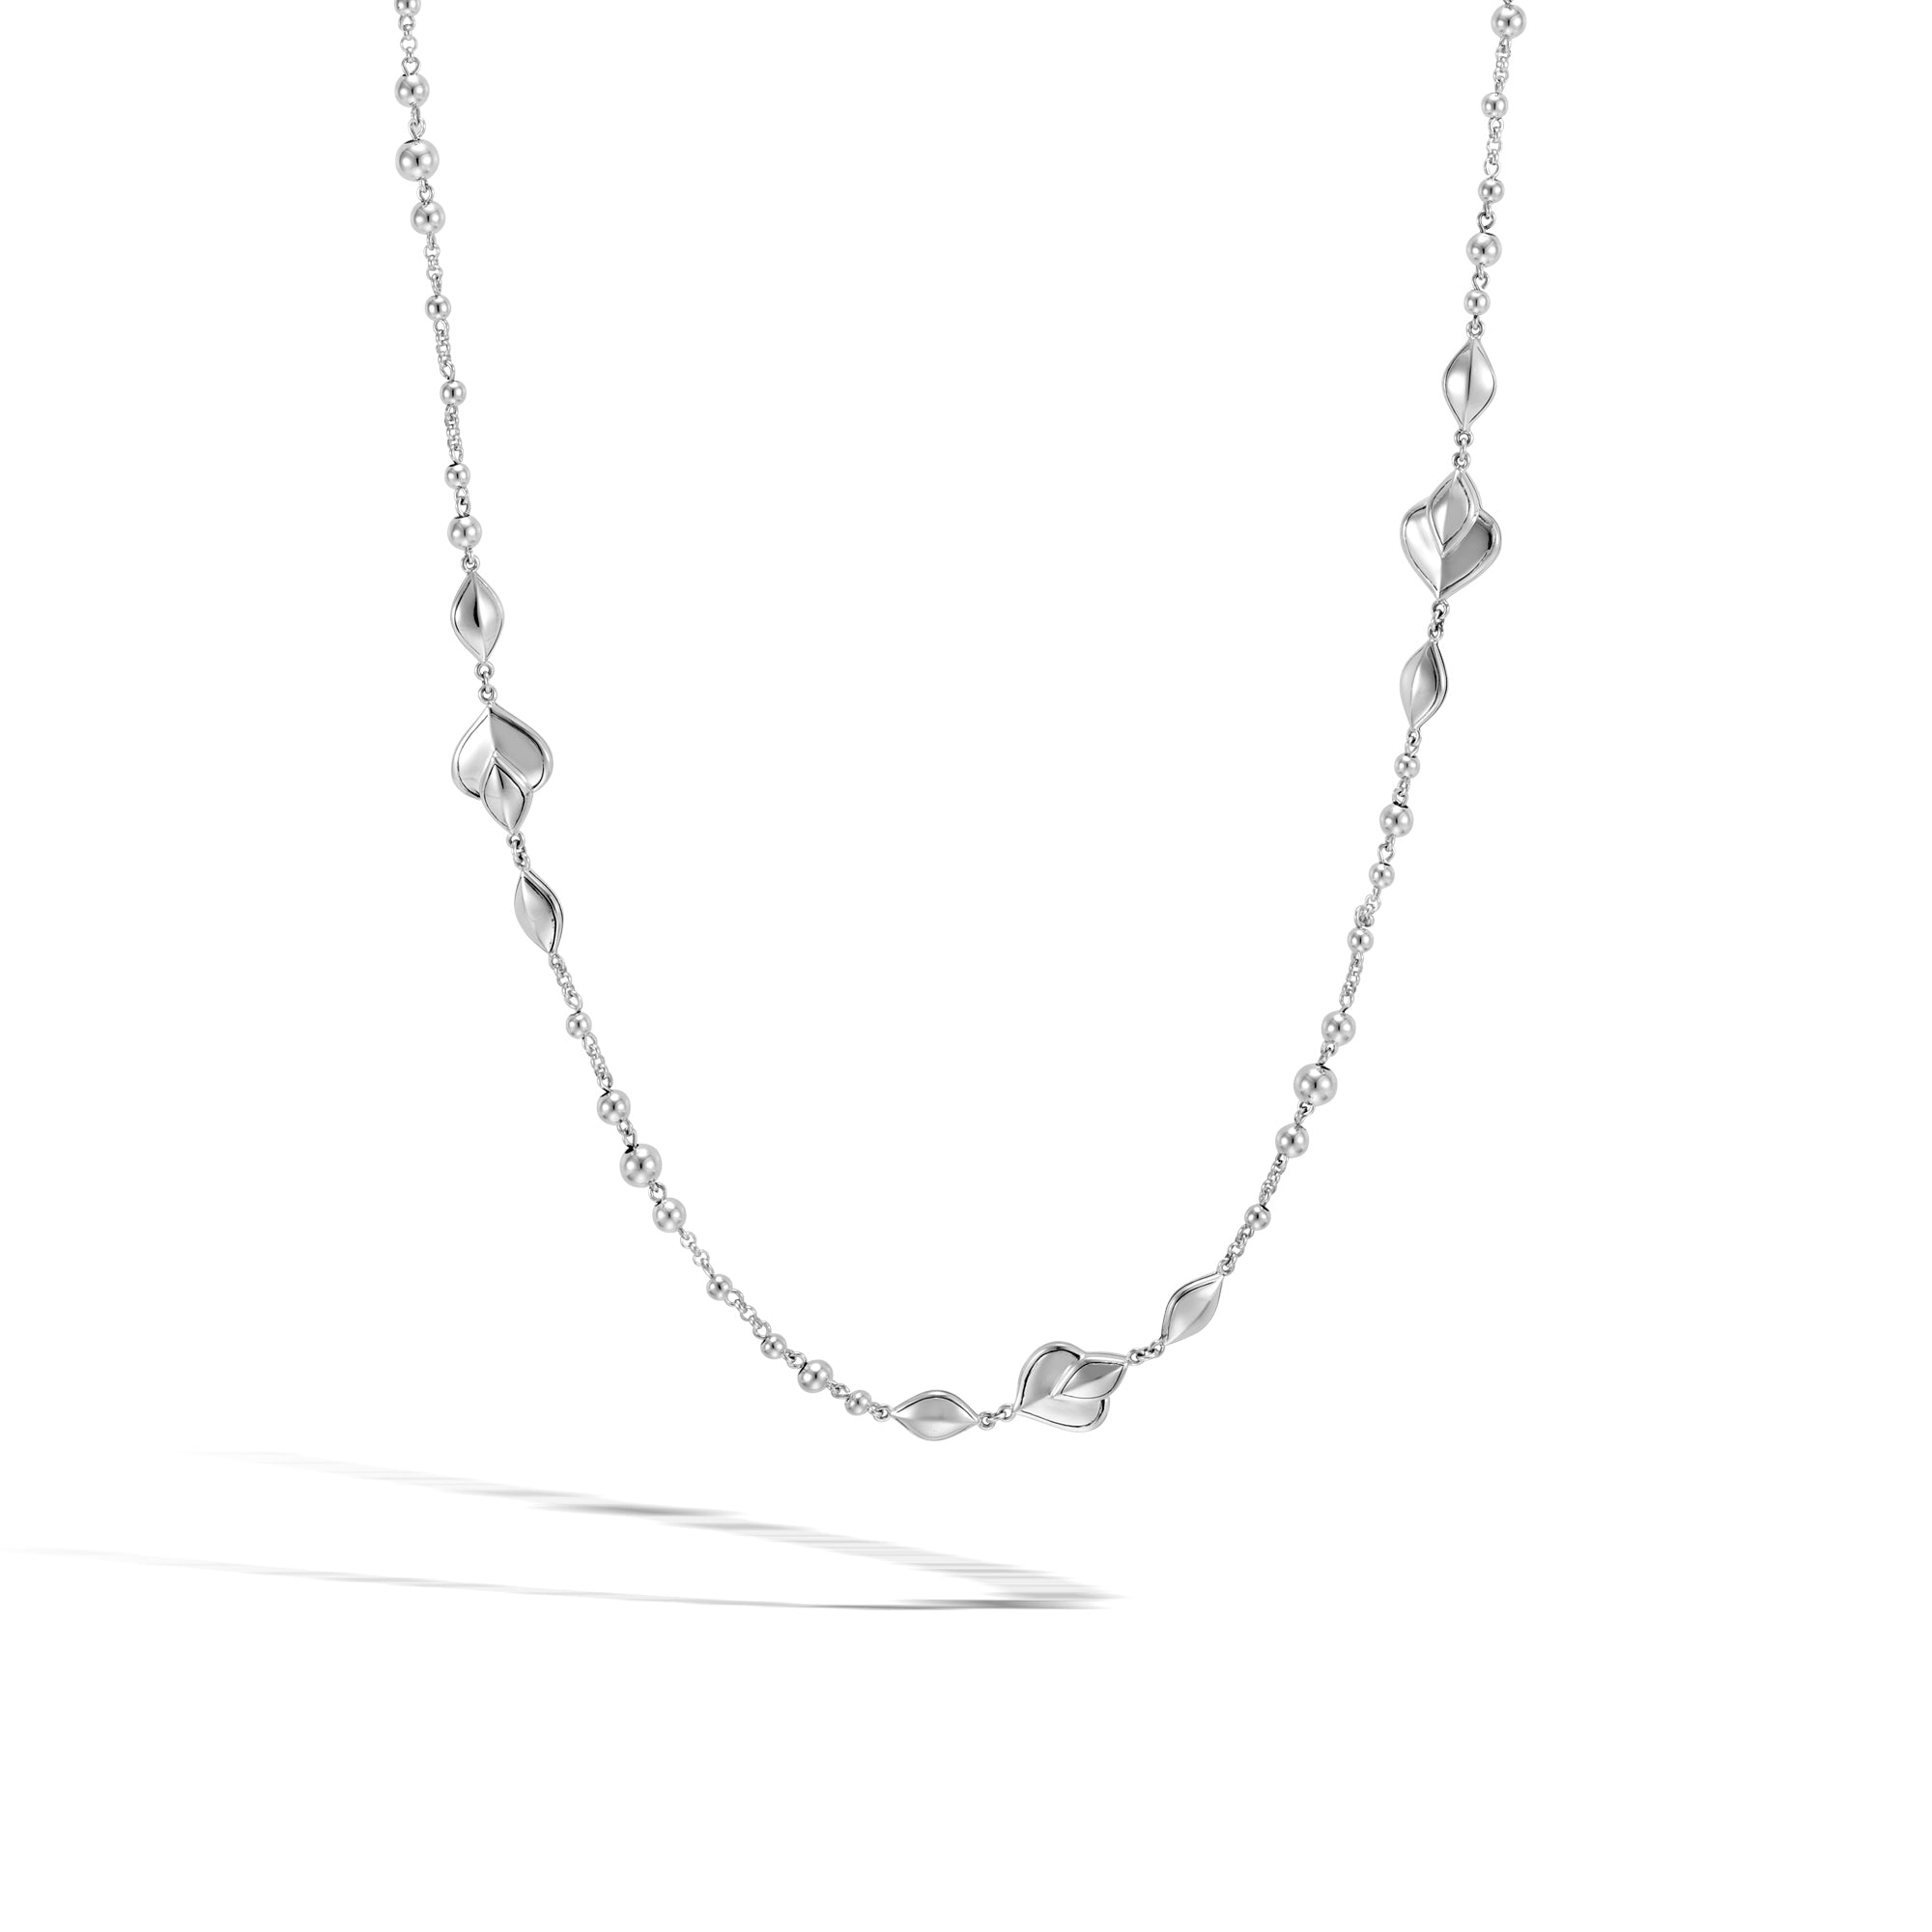 Naga Station Necklace